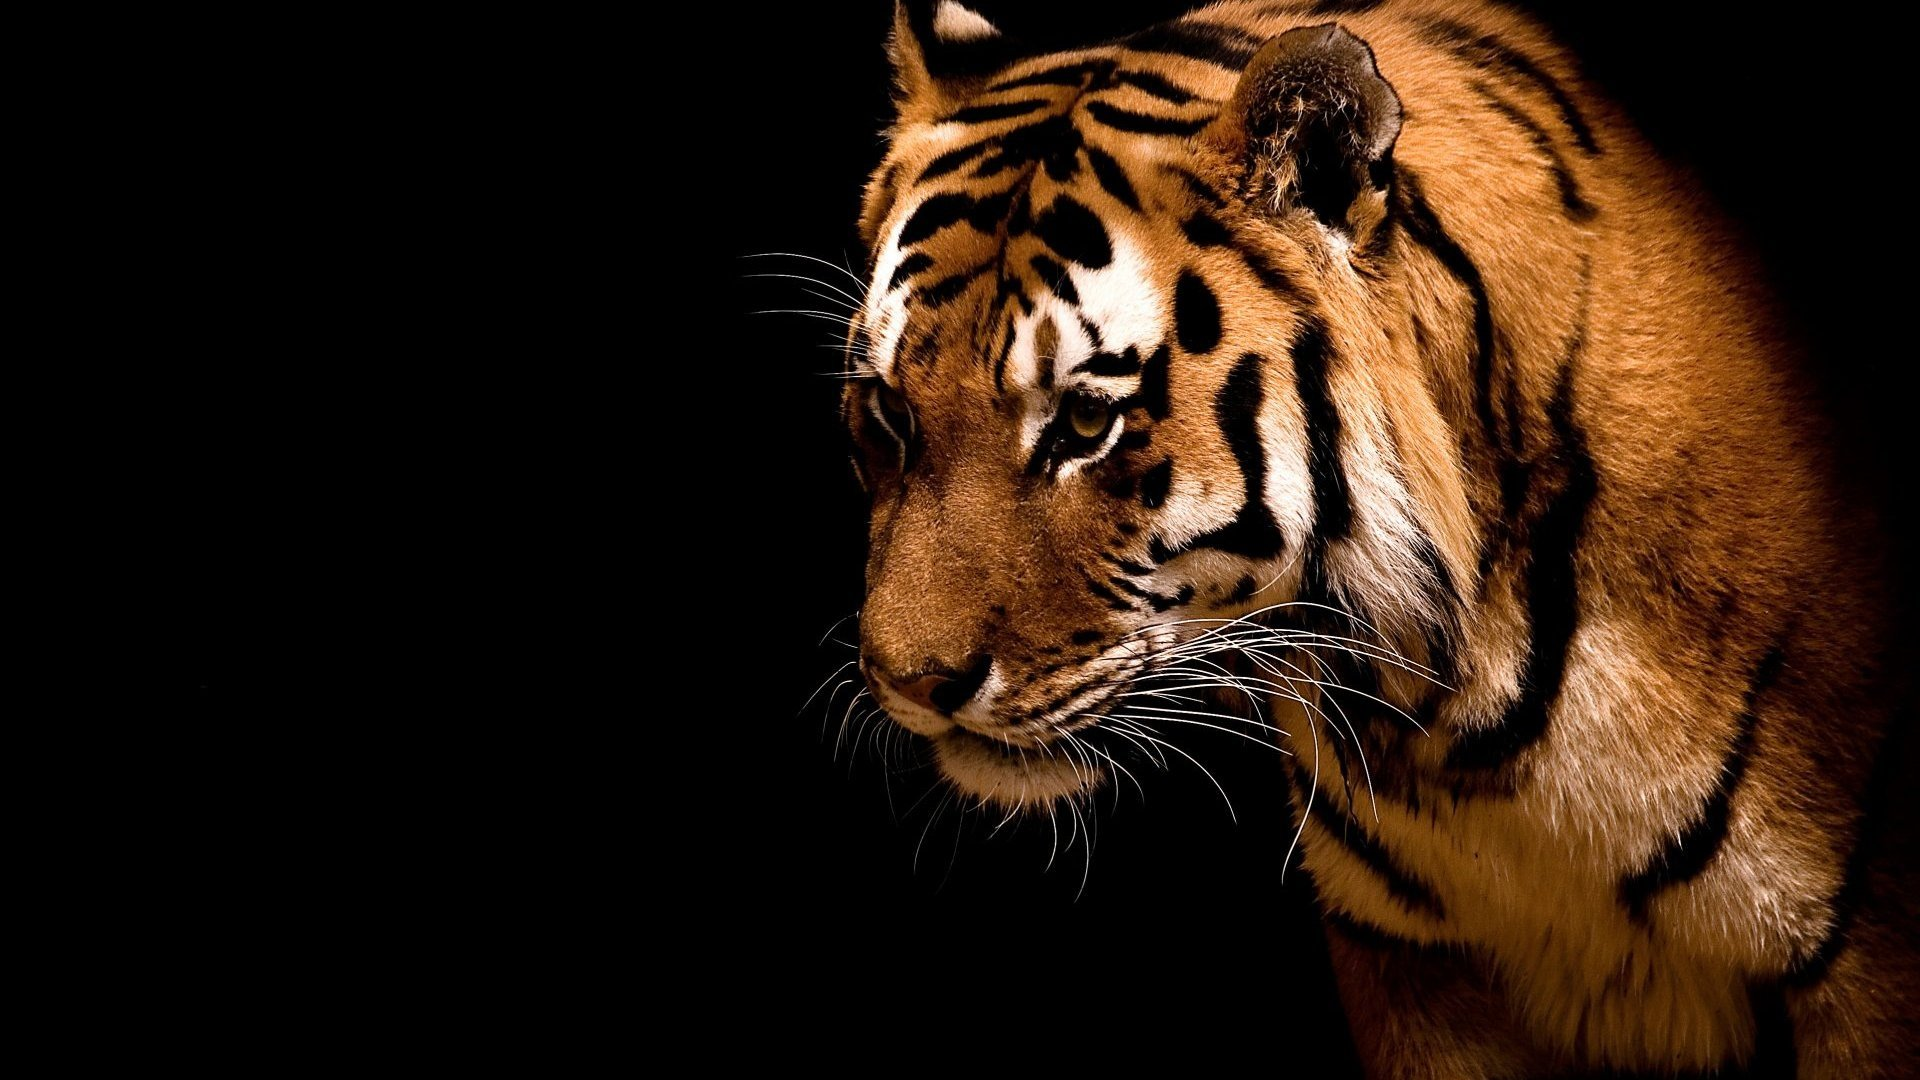 High resolution Tiger hd 1080p wallpaper ID:115616 for desktop